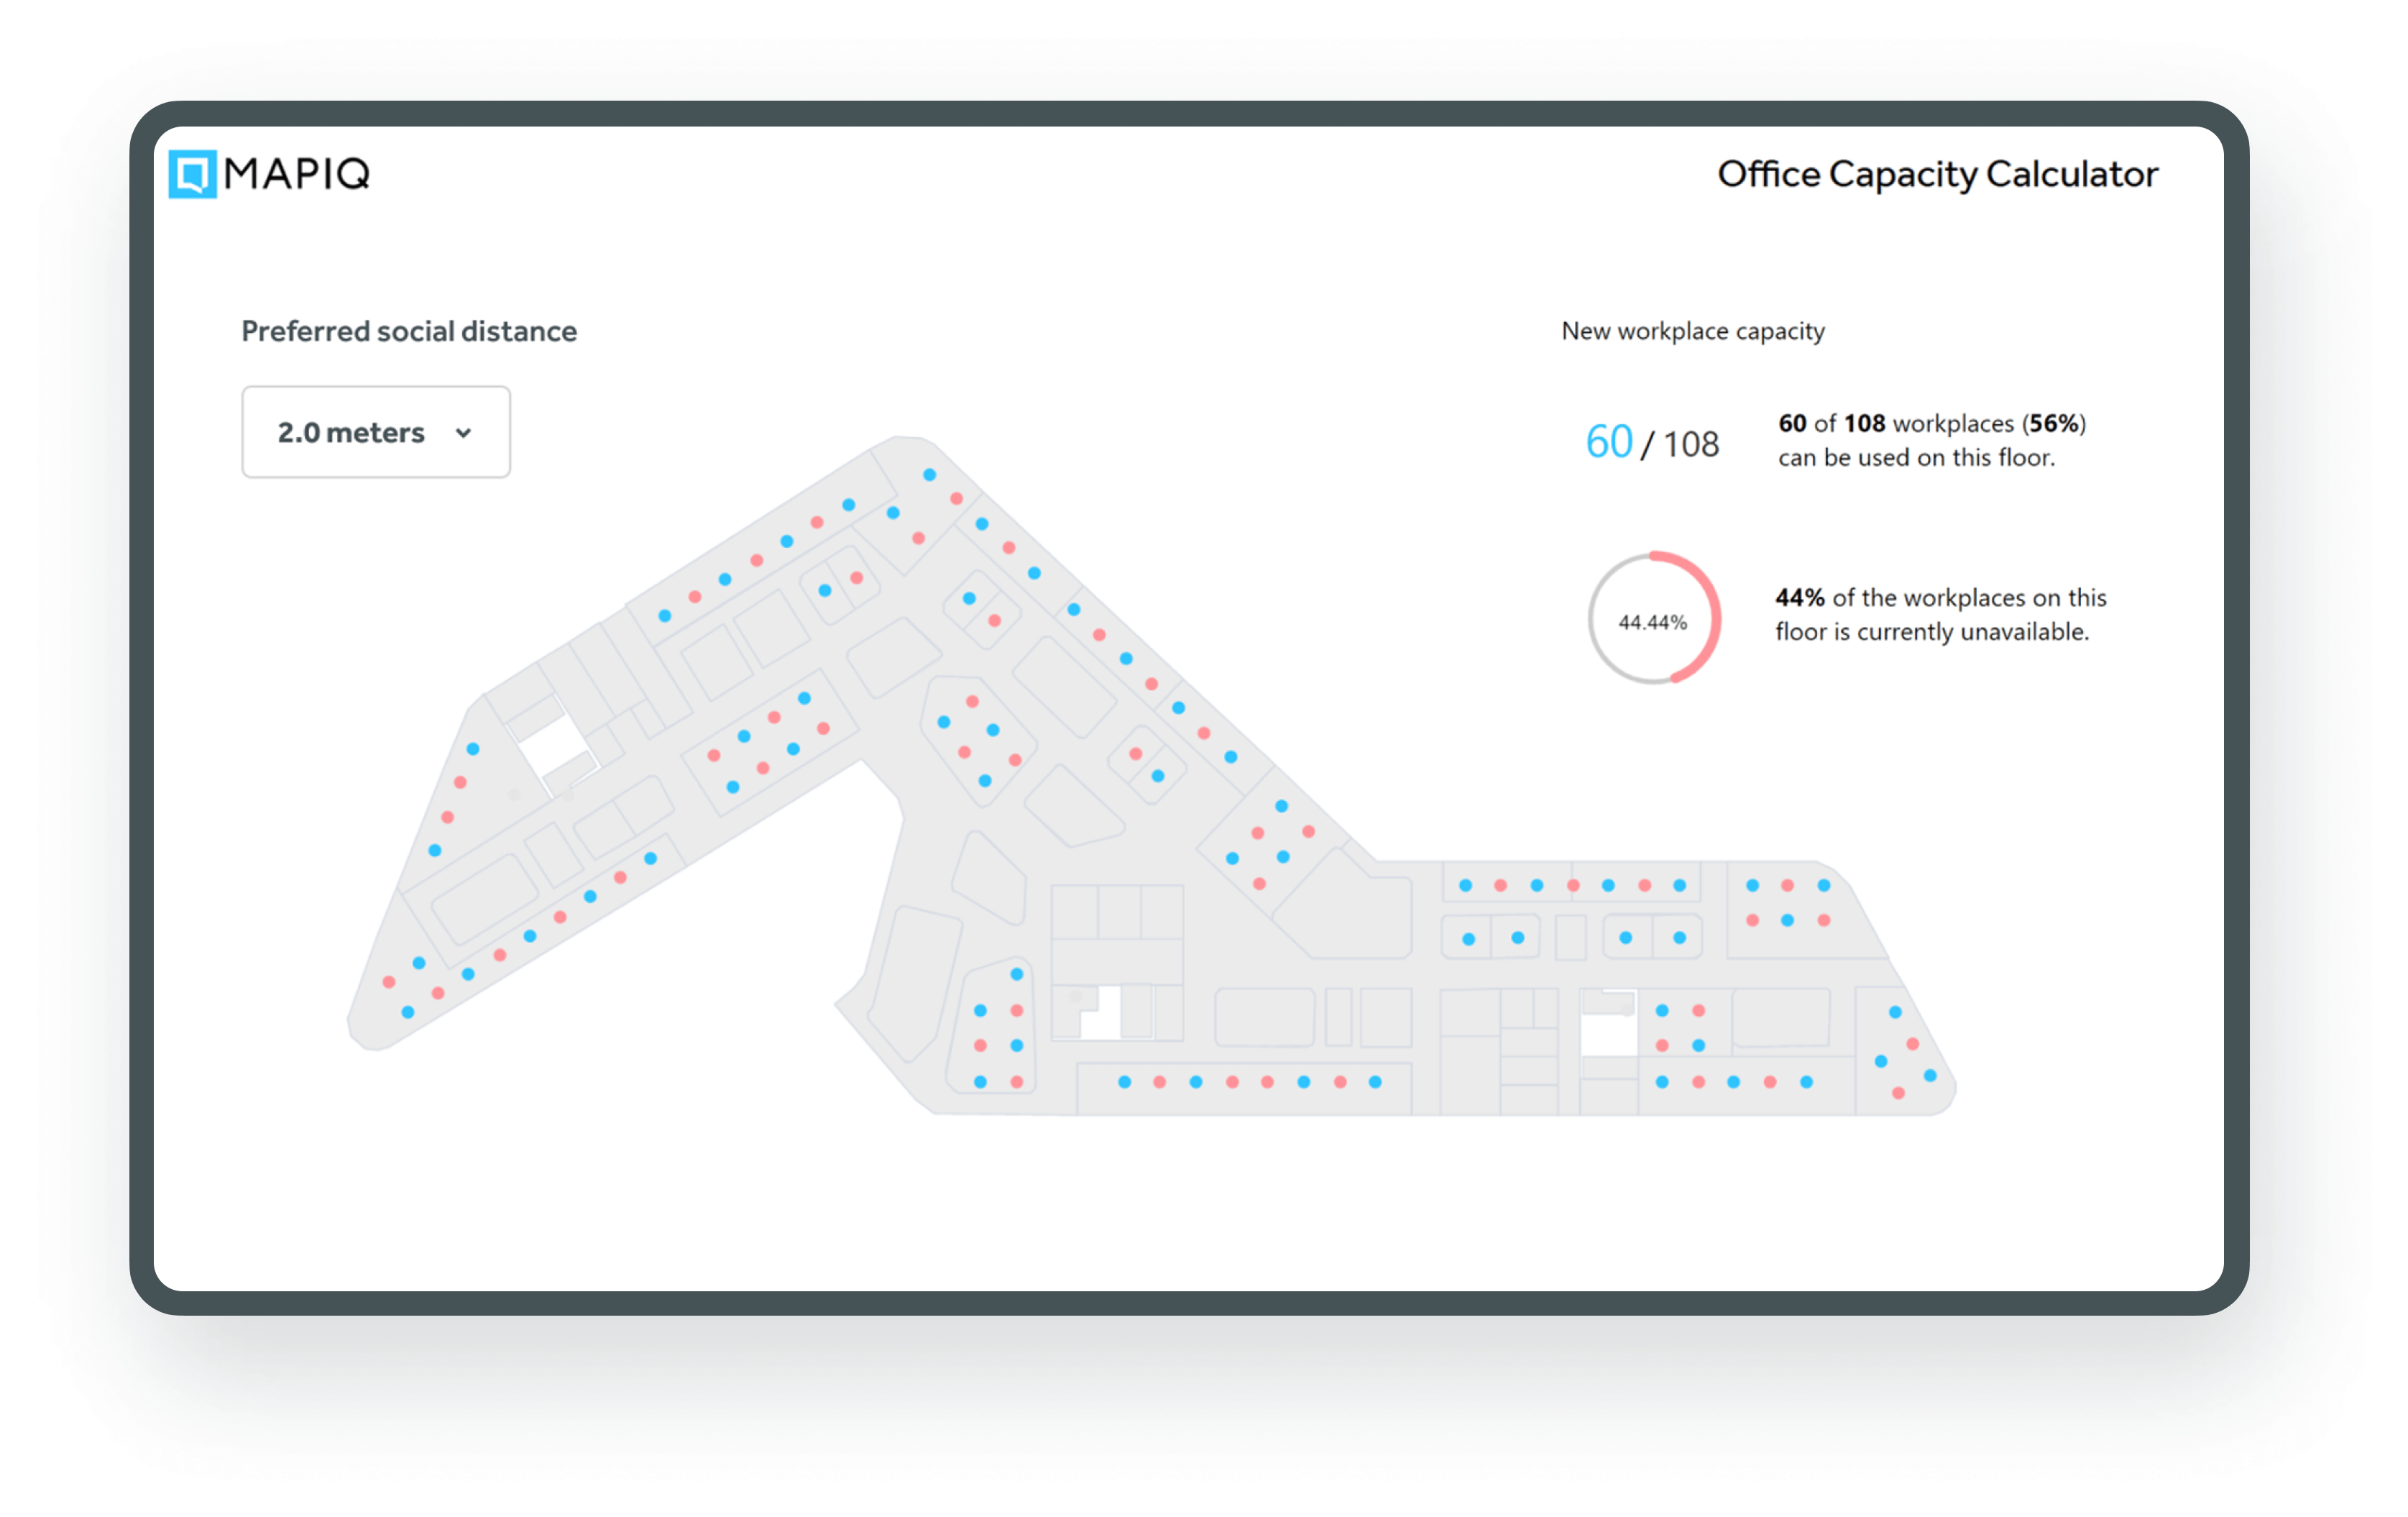 With our office capacity calculator, you can determine workplace capacity, assign desks and save valuable work-time.